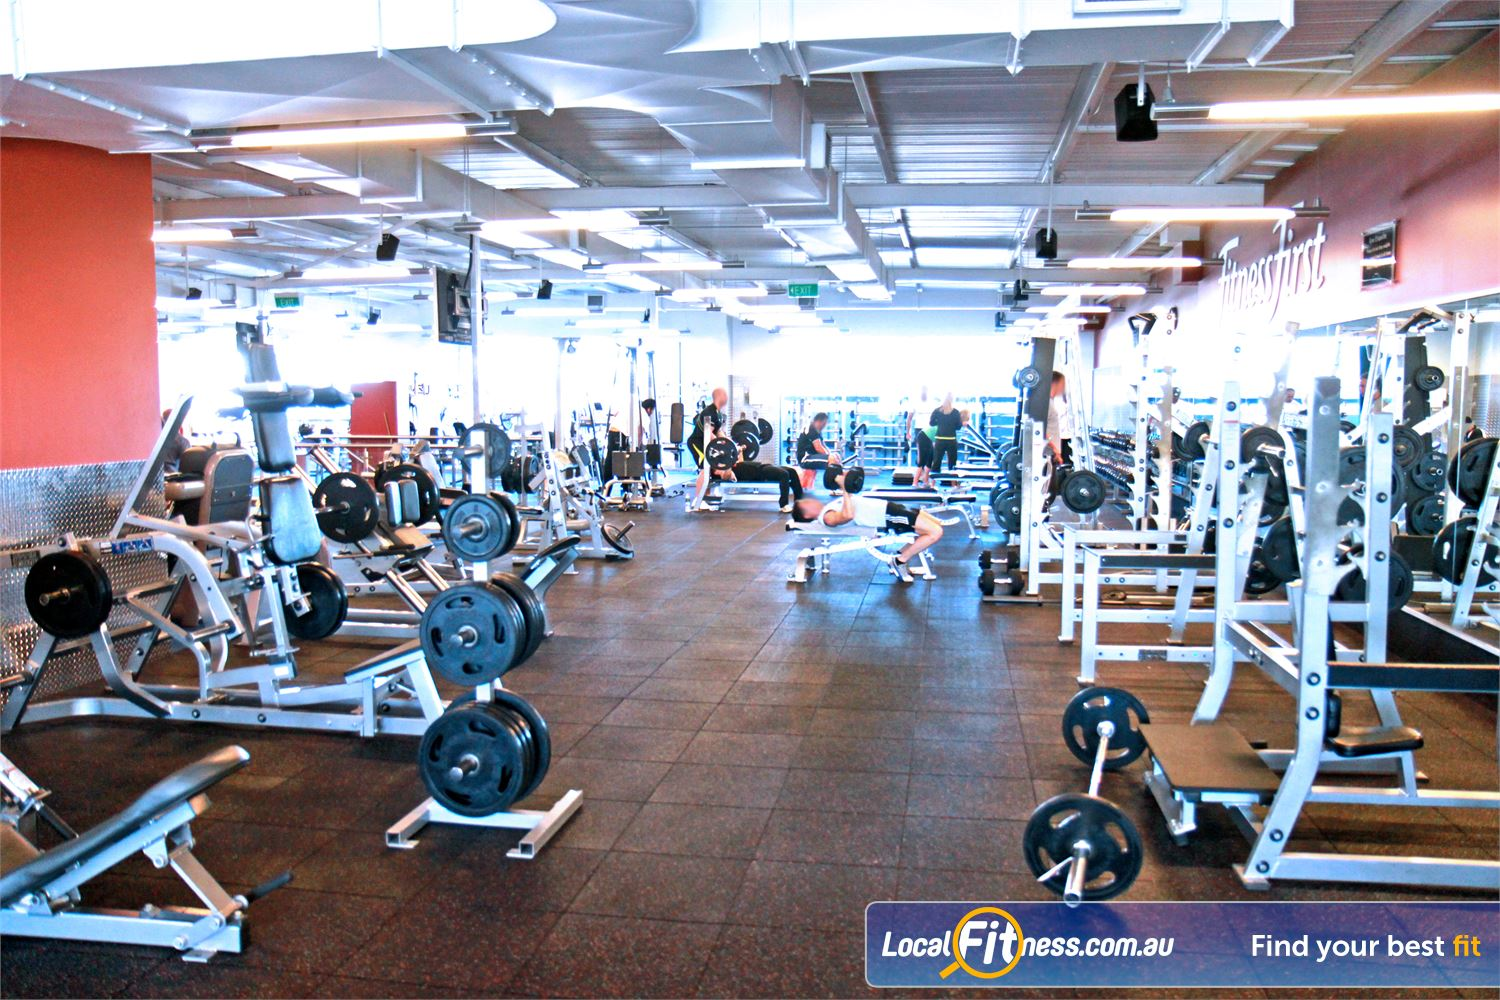 Goodlife Health Clubs Innaloo Our Innaloo gym offers an extensive range of dumbbell and barbell equipment.